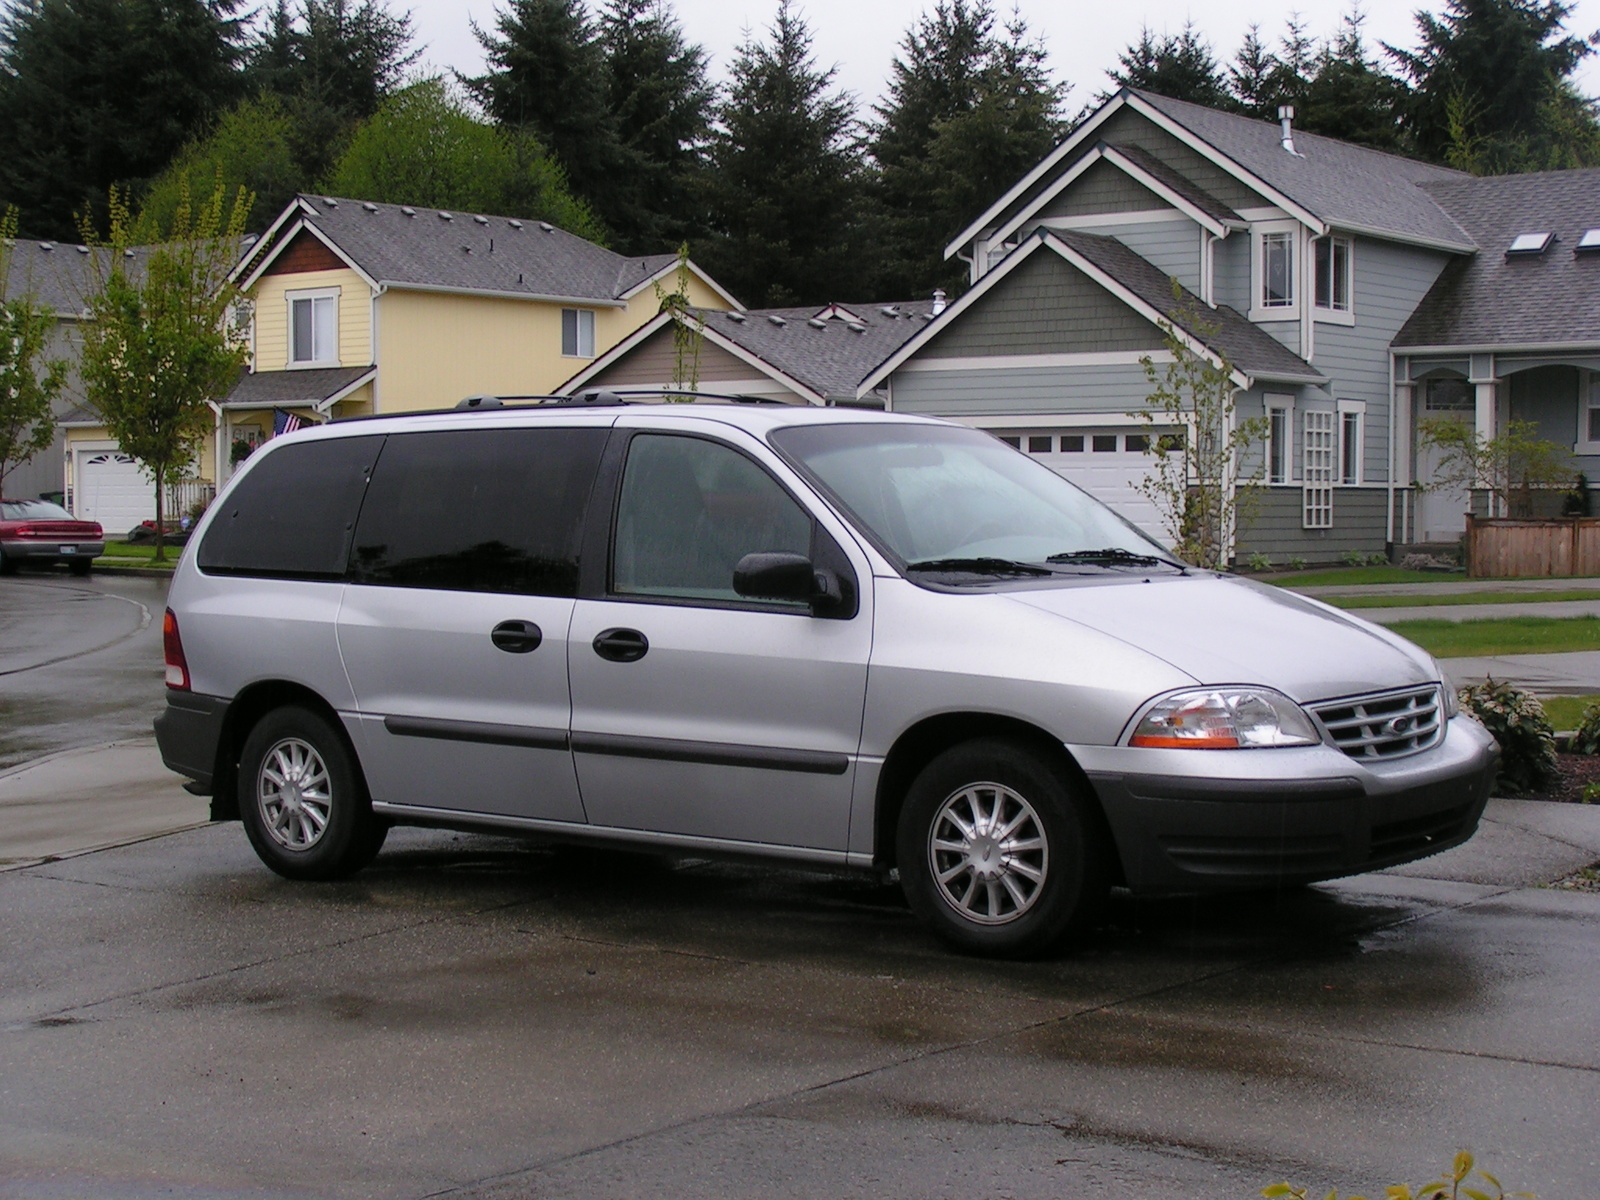 Cars ford windstar #6